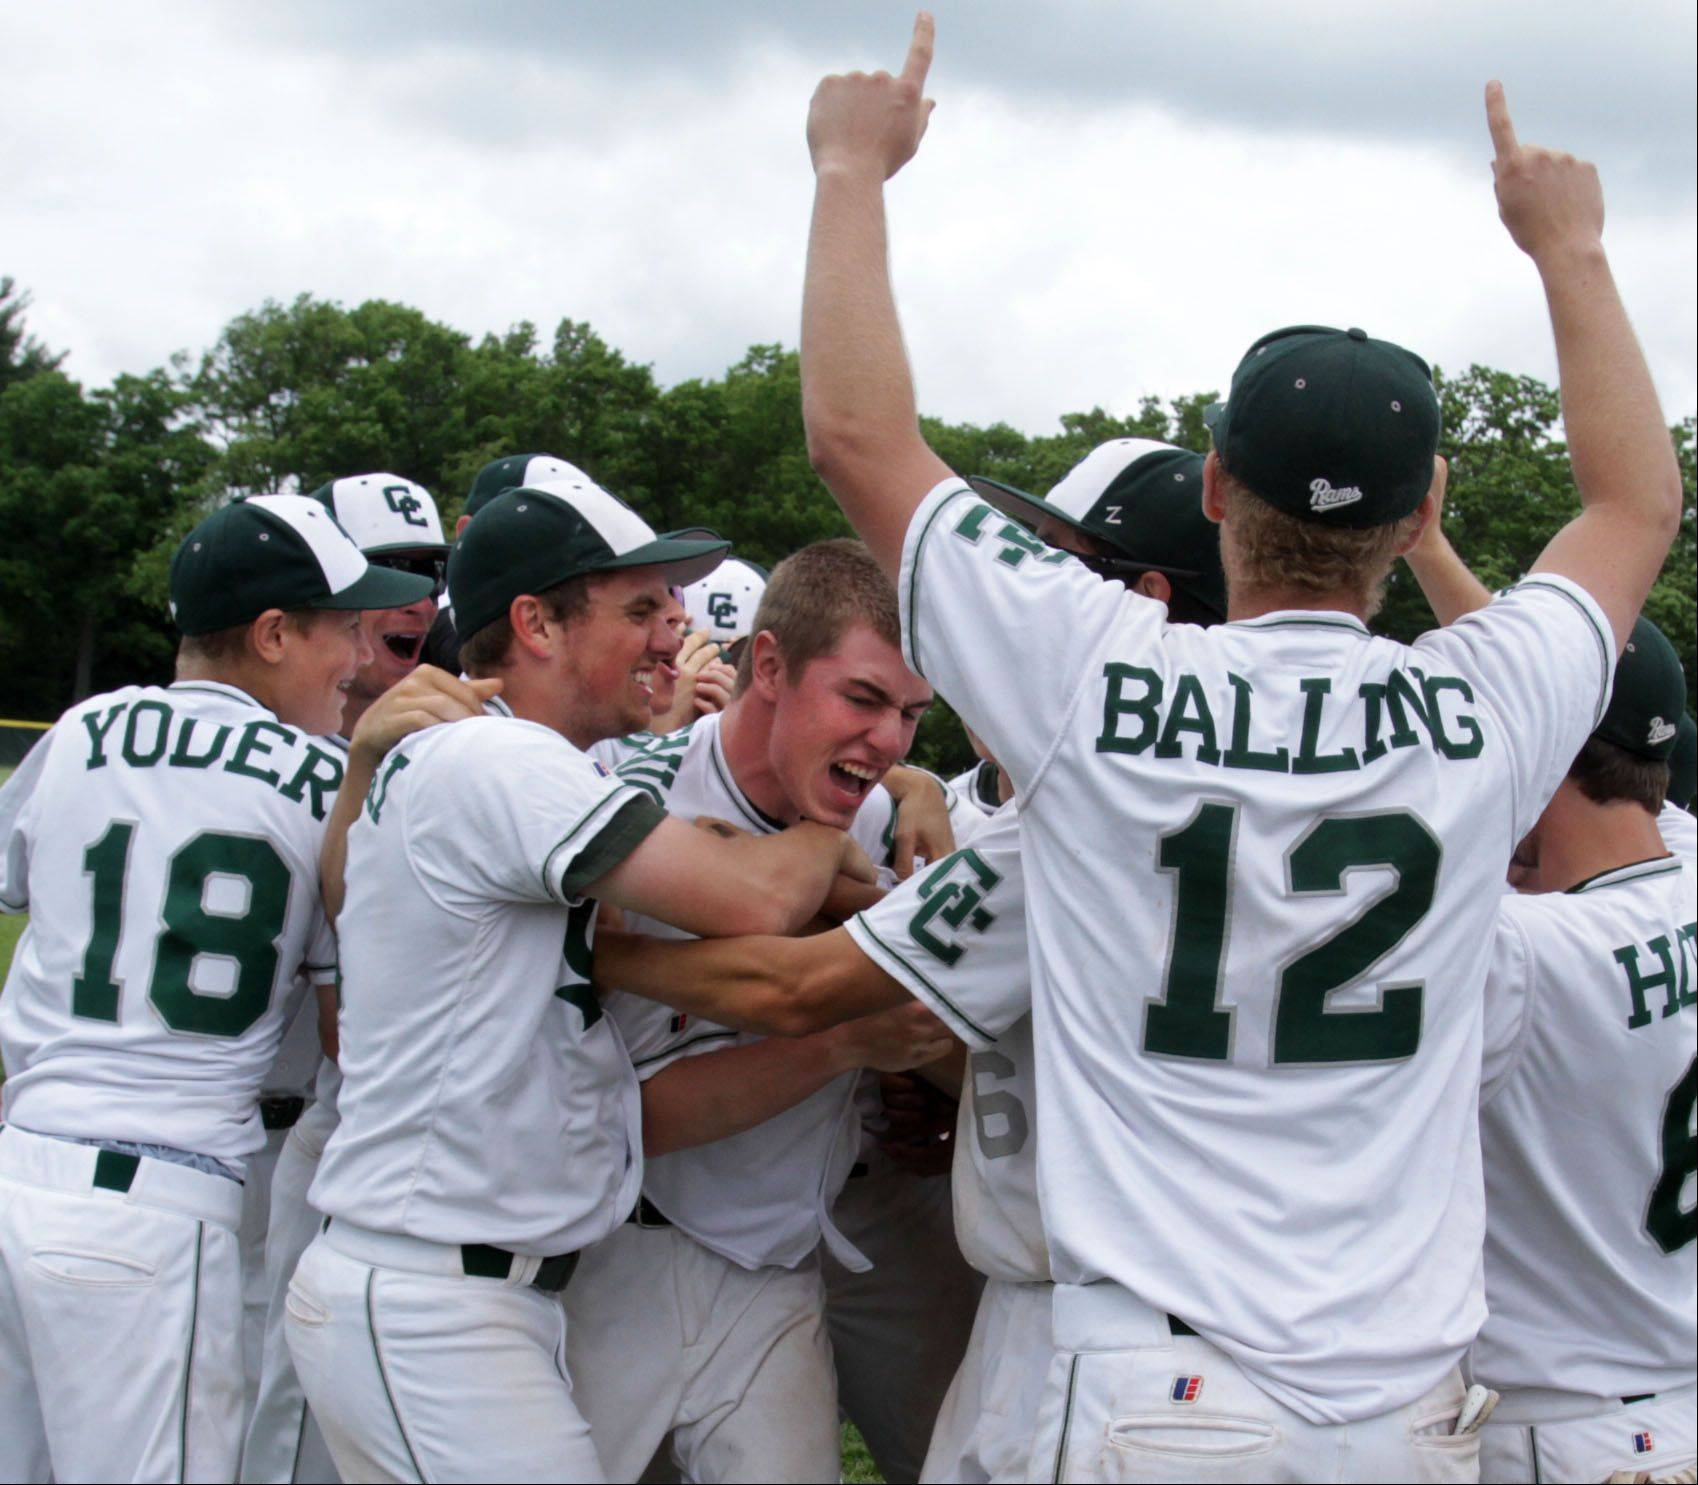 Grayslake Central reliever Eric Skutnick, center, is mobbed by teammates after recording the last out in the seventh inning as the Rams top Wauconda 6-4 in Class 3A sectional championship play Saturday.